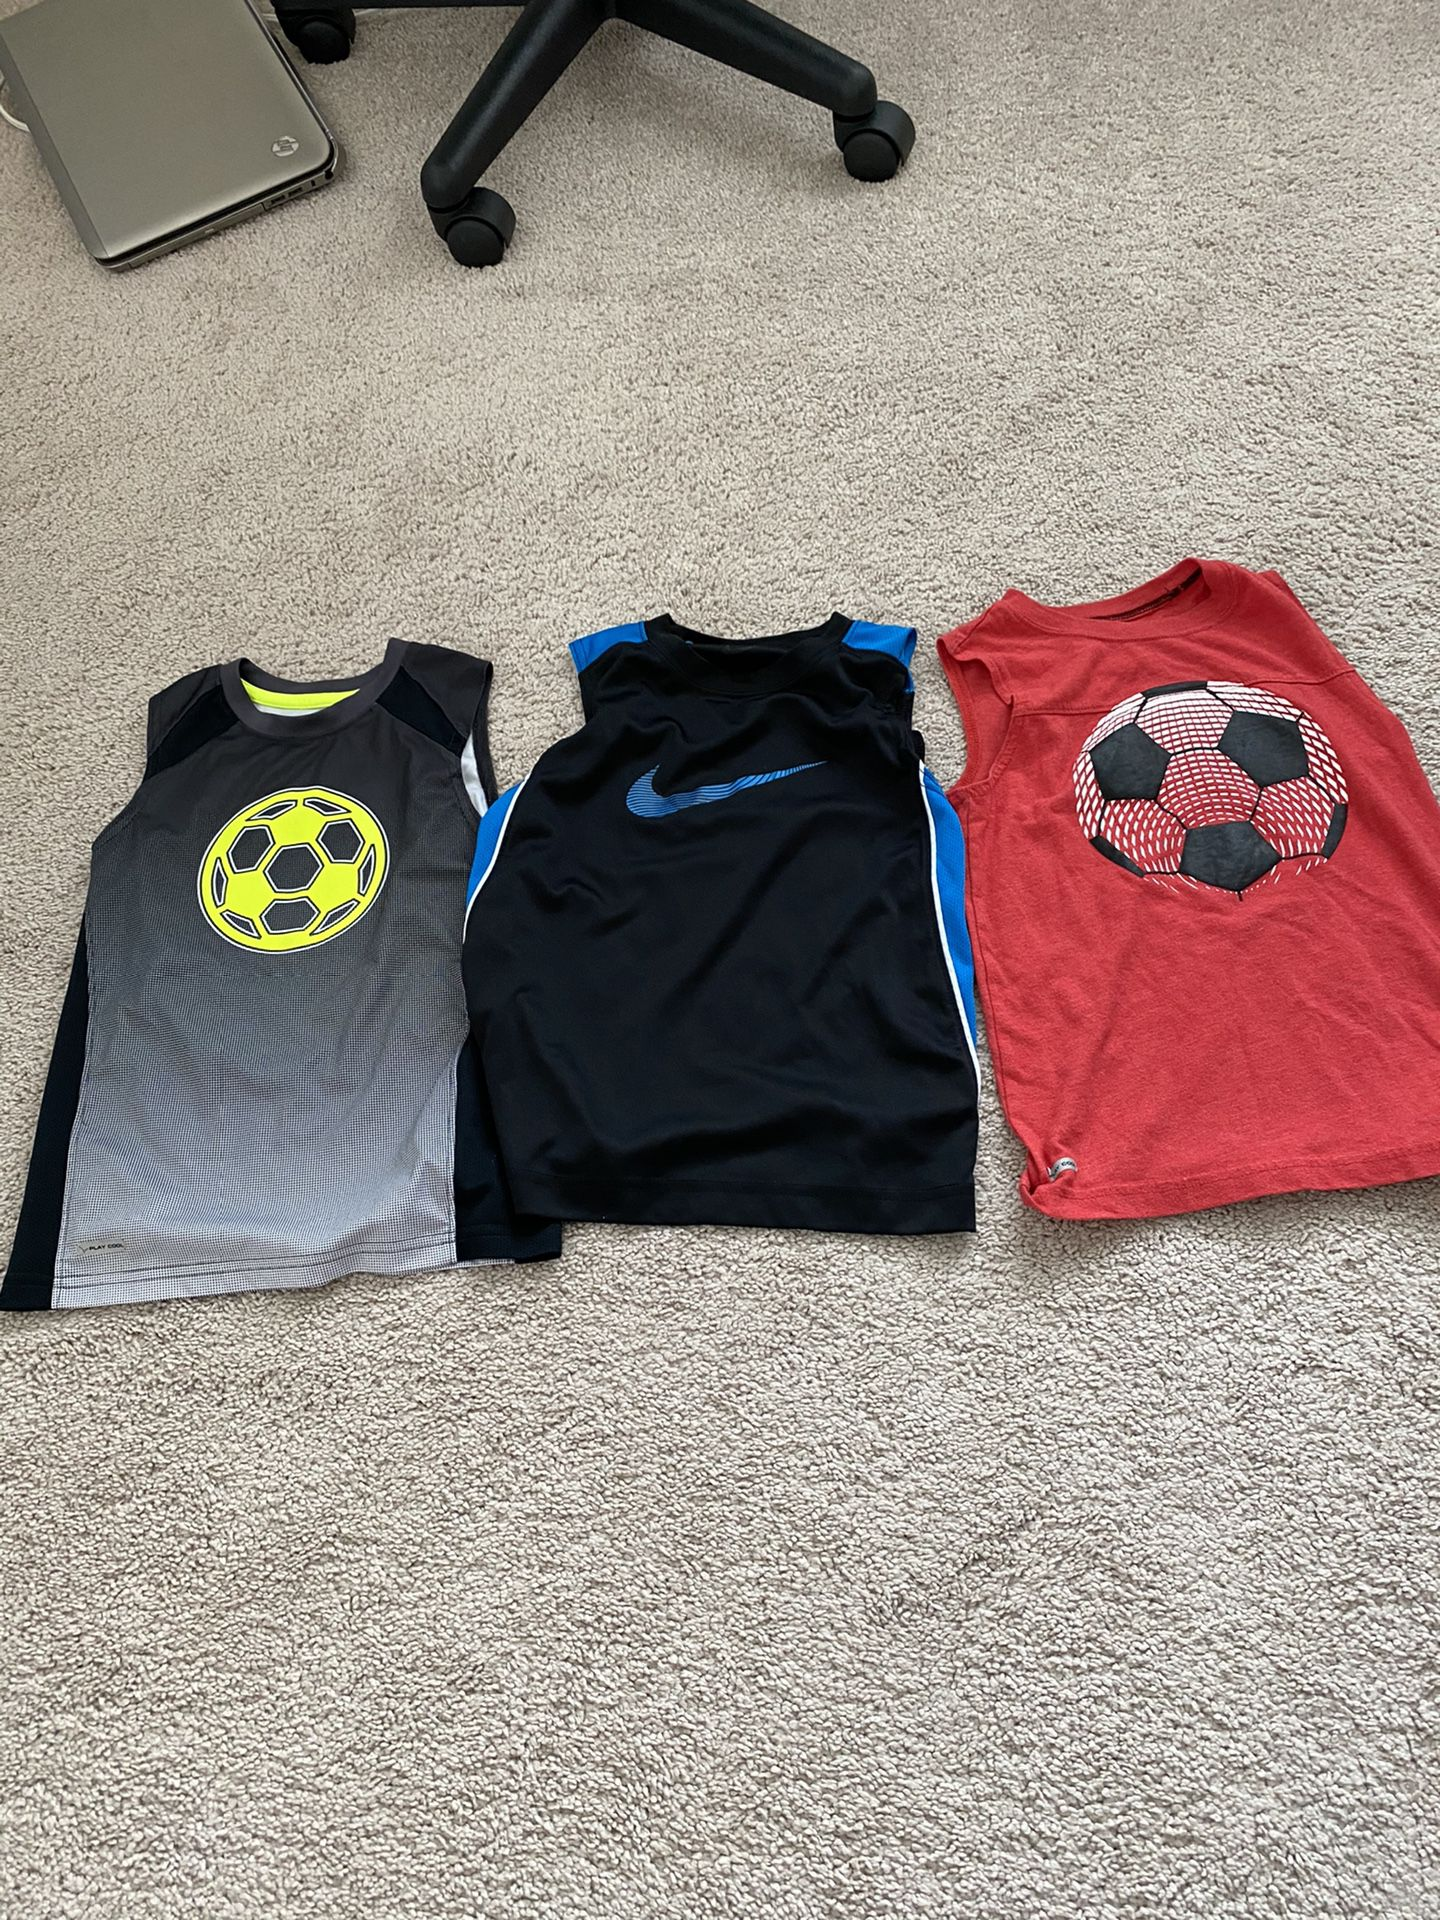 Boy Clothes(size-6)